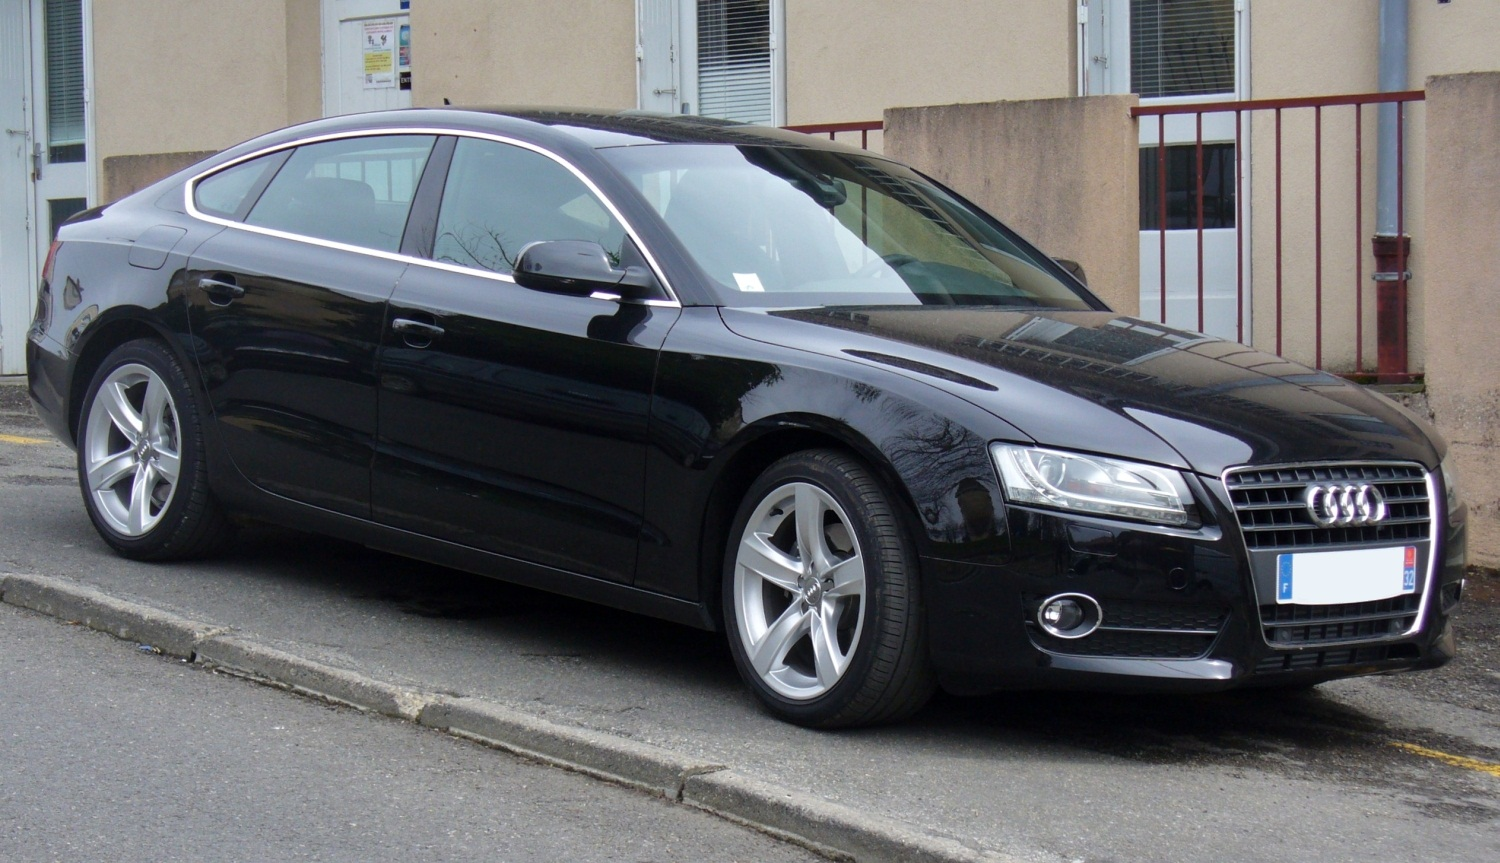 audi a5 sportback 2 0 tdi technical details history photos on better parts ltd. Black Bedroom Furniture Sets. Home Design Ideas